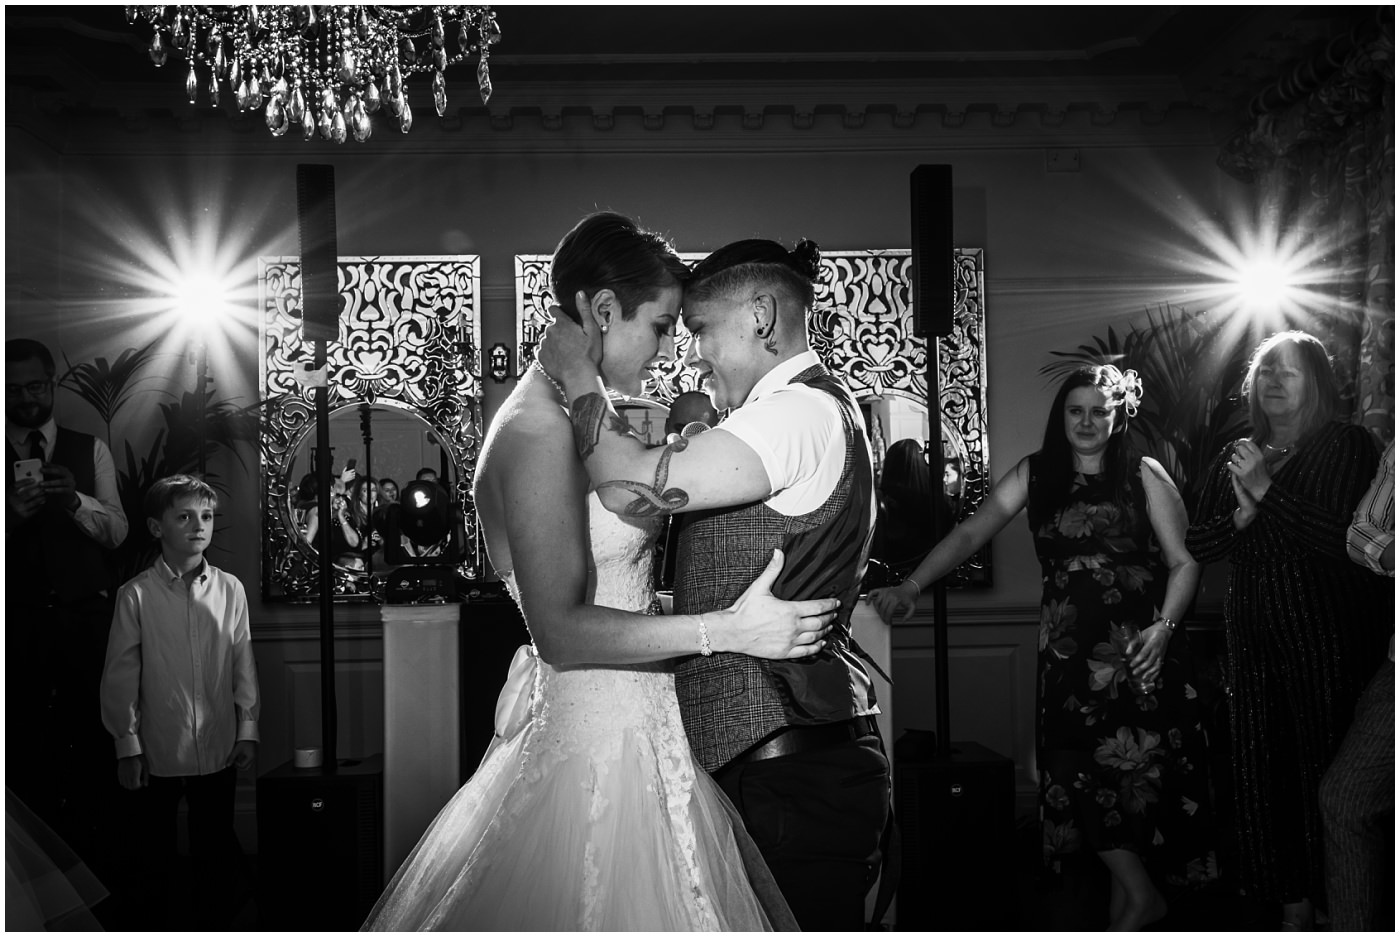 Two brides during their first dance at Eaves Hall Wedding